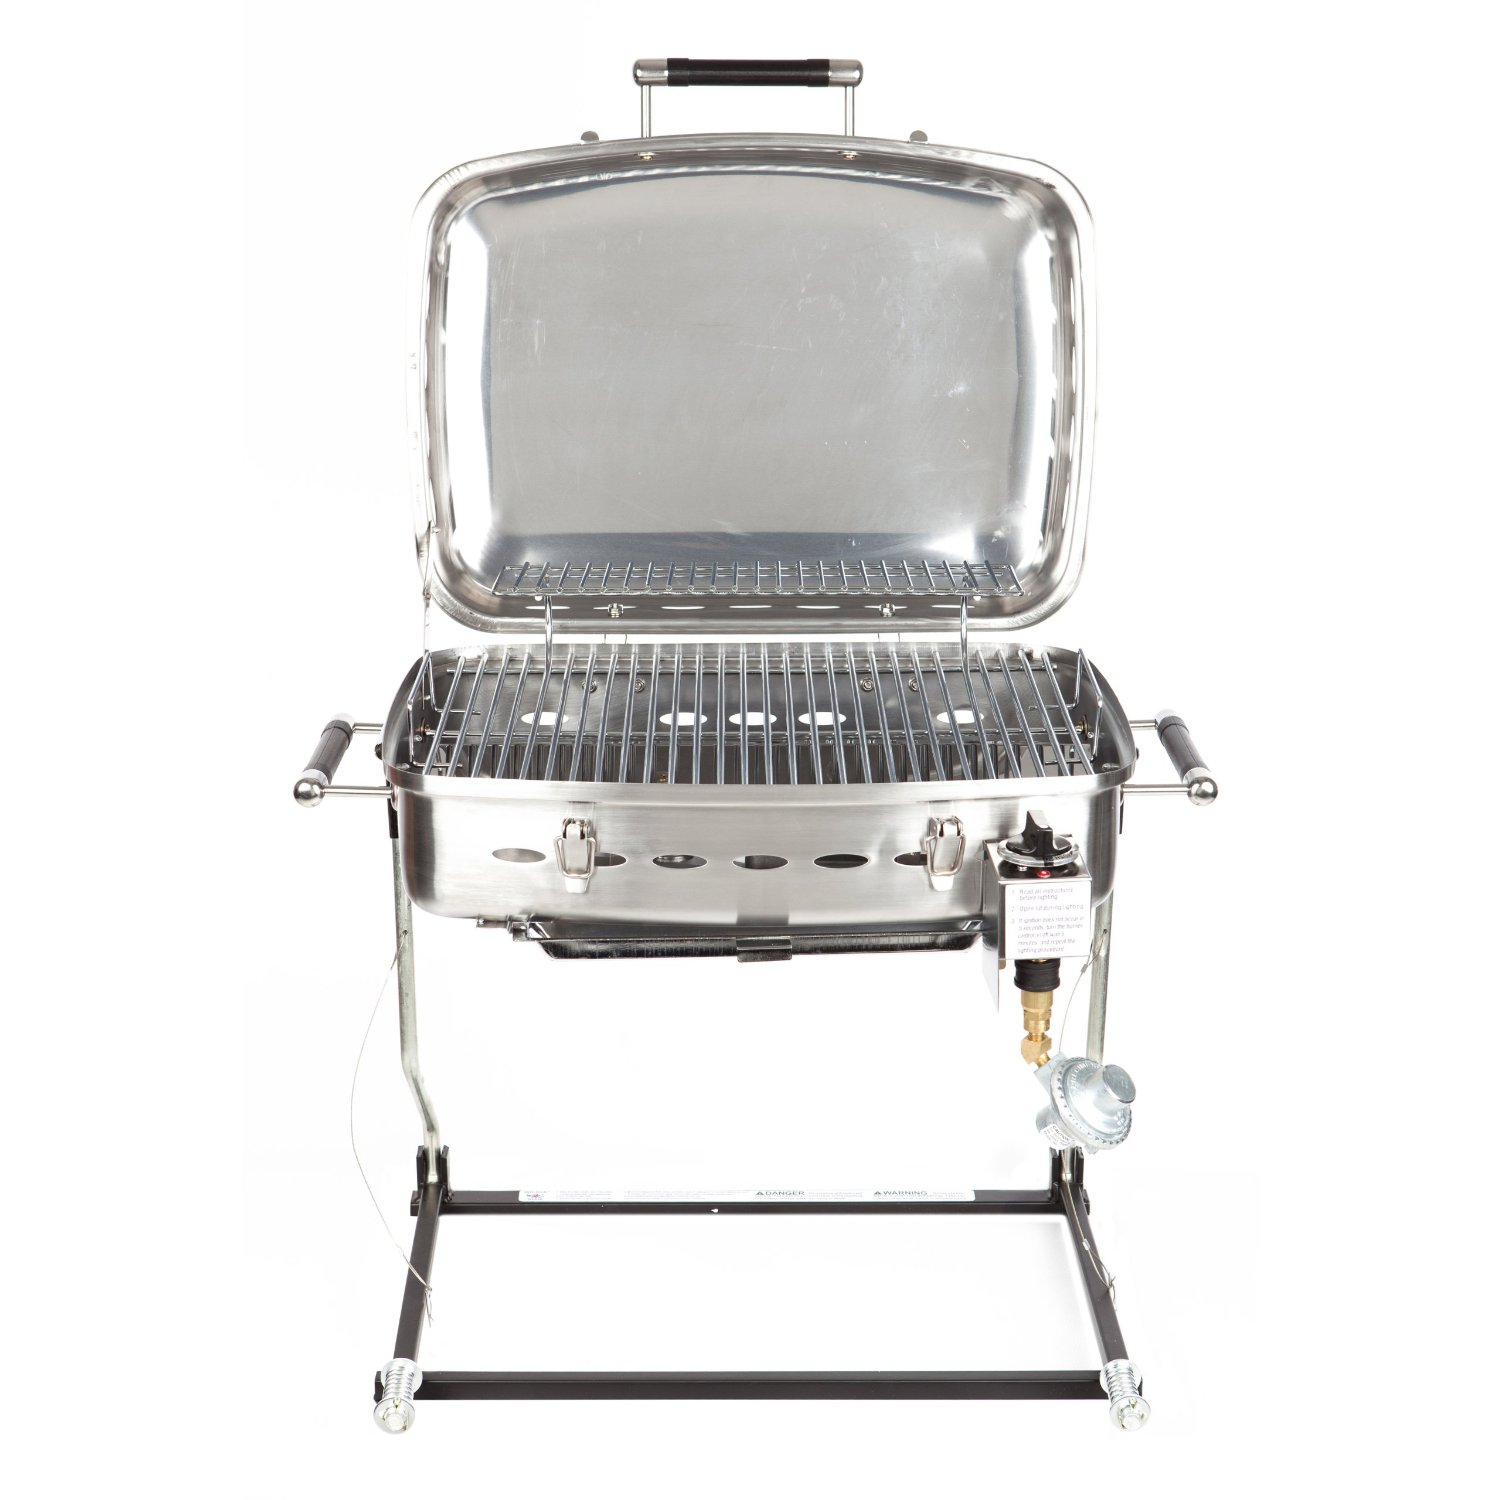 RVAD650 Fleming Sales Barbeque Grill Propane